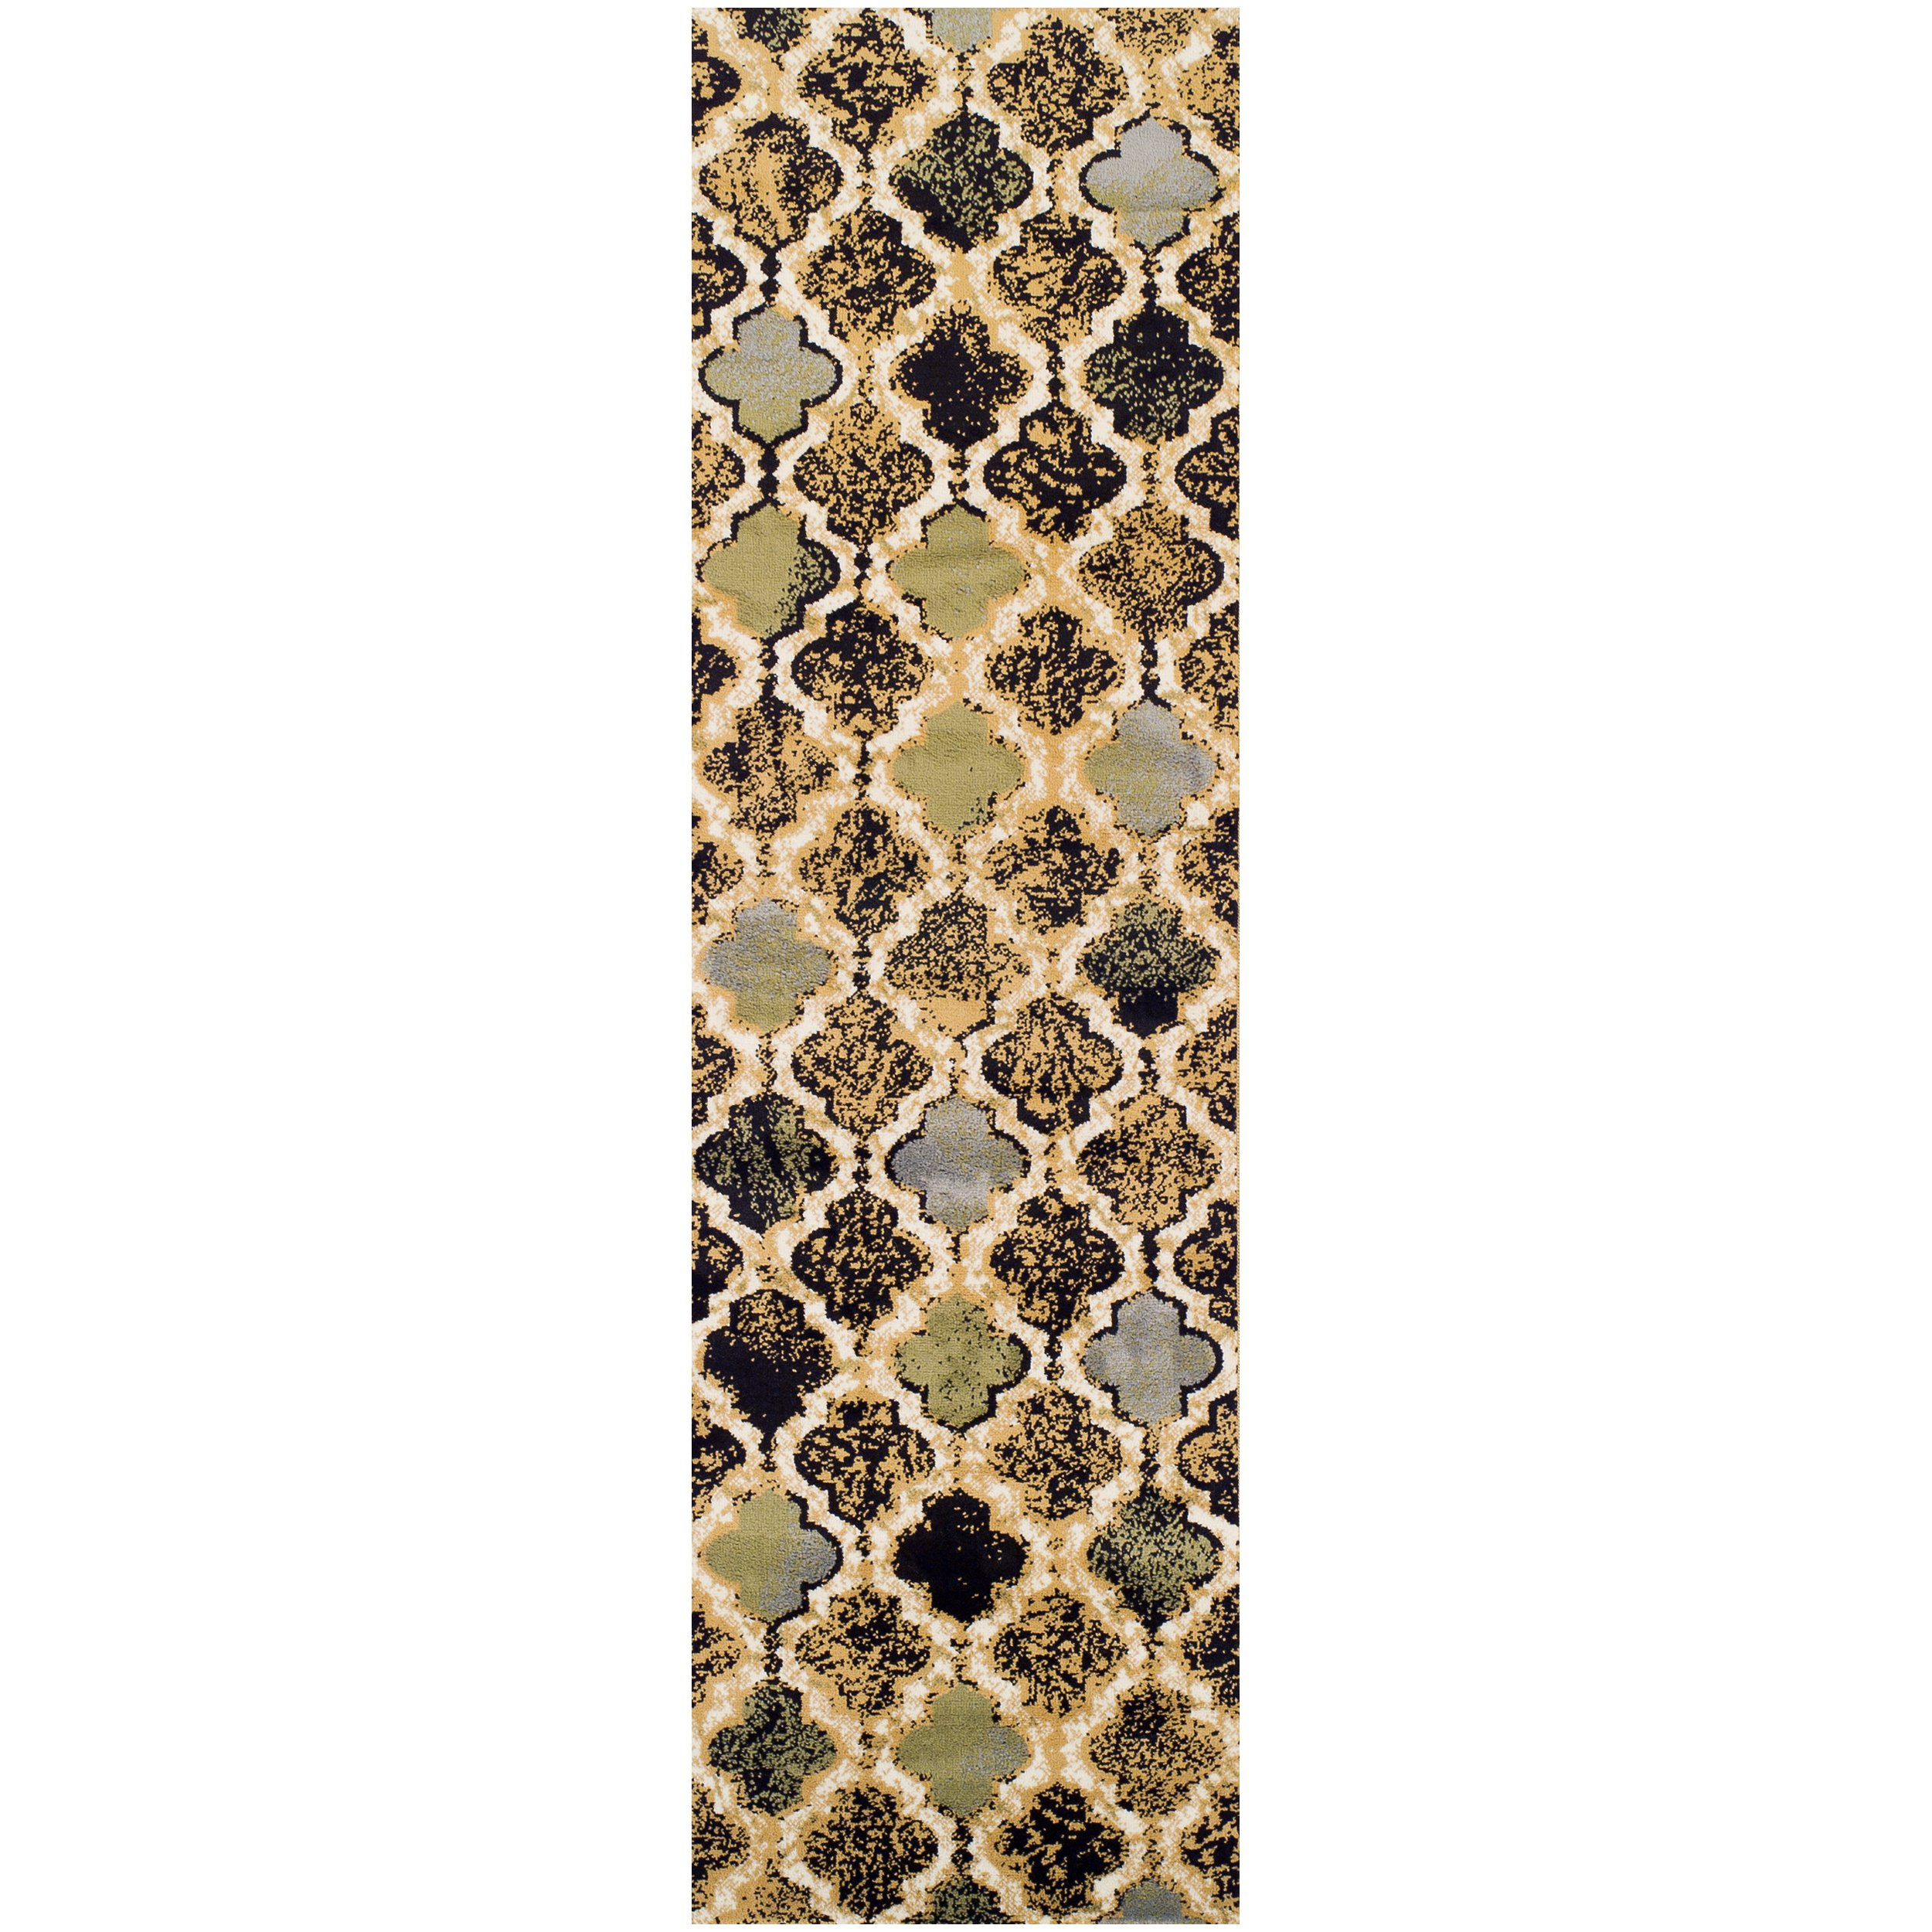 """Superior Modern Viking Collection Area Rug, 8mm Pile Height with Jute Backing, Chic Textured Geometric Trellis Pattern, Anti-Static, Water-Repellent Rugs - Multi-Colored, 2'7"""" x 8' Runner"""